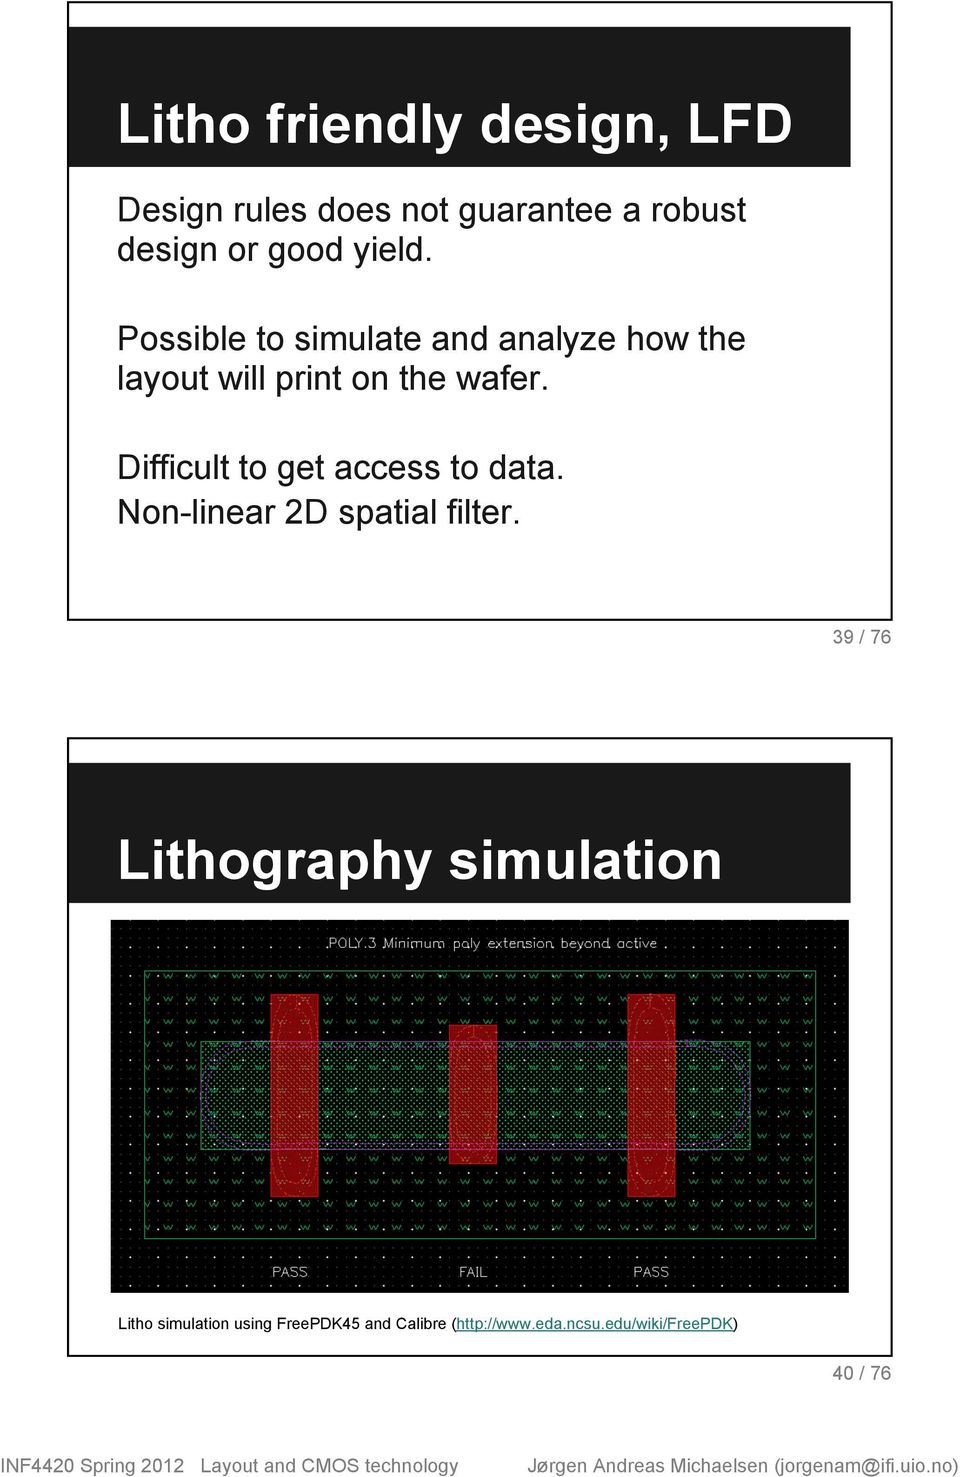 Difficult to get access to data. Non-linear 2D spatial filter.